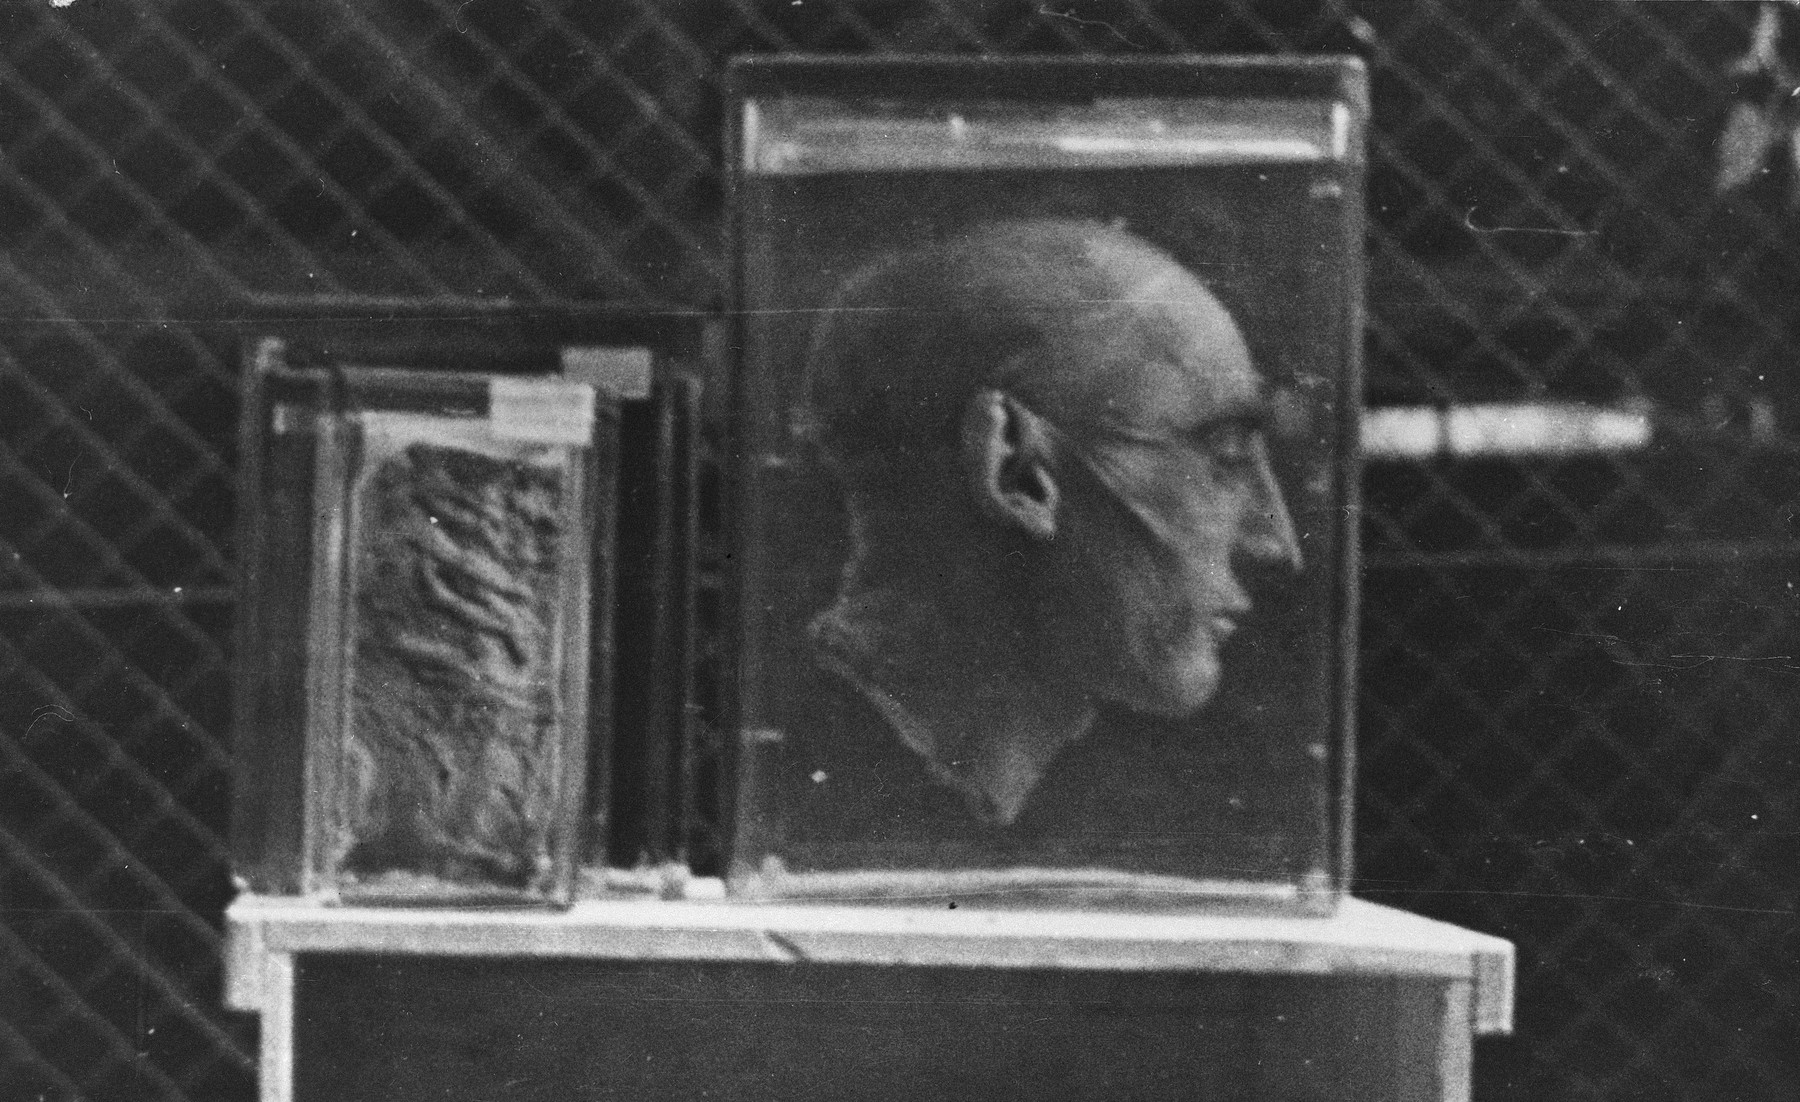 Profile view of a preserved severed head found in Buchenwald.